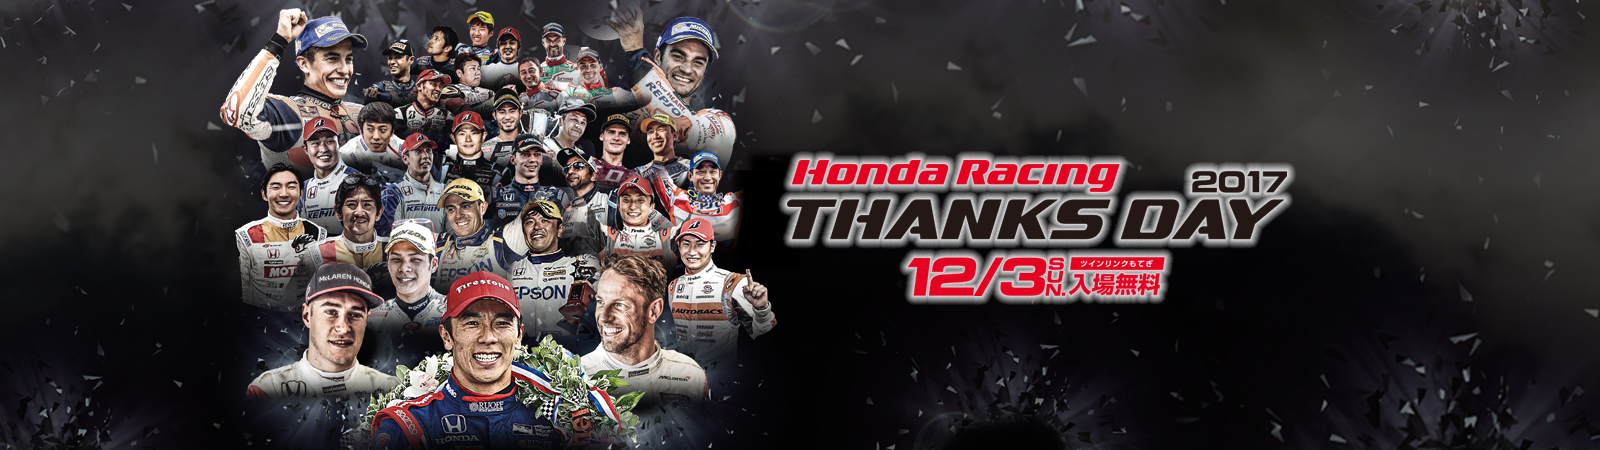 12/3 Honda Racing THANKS DAY開催!